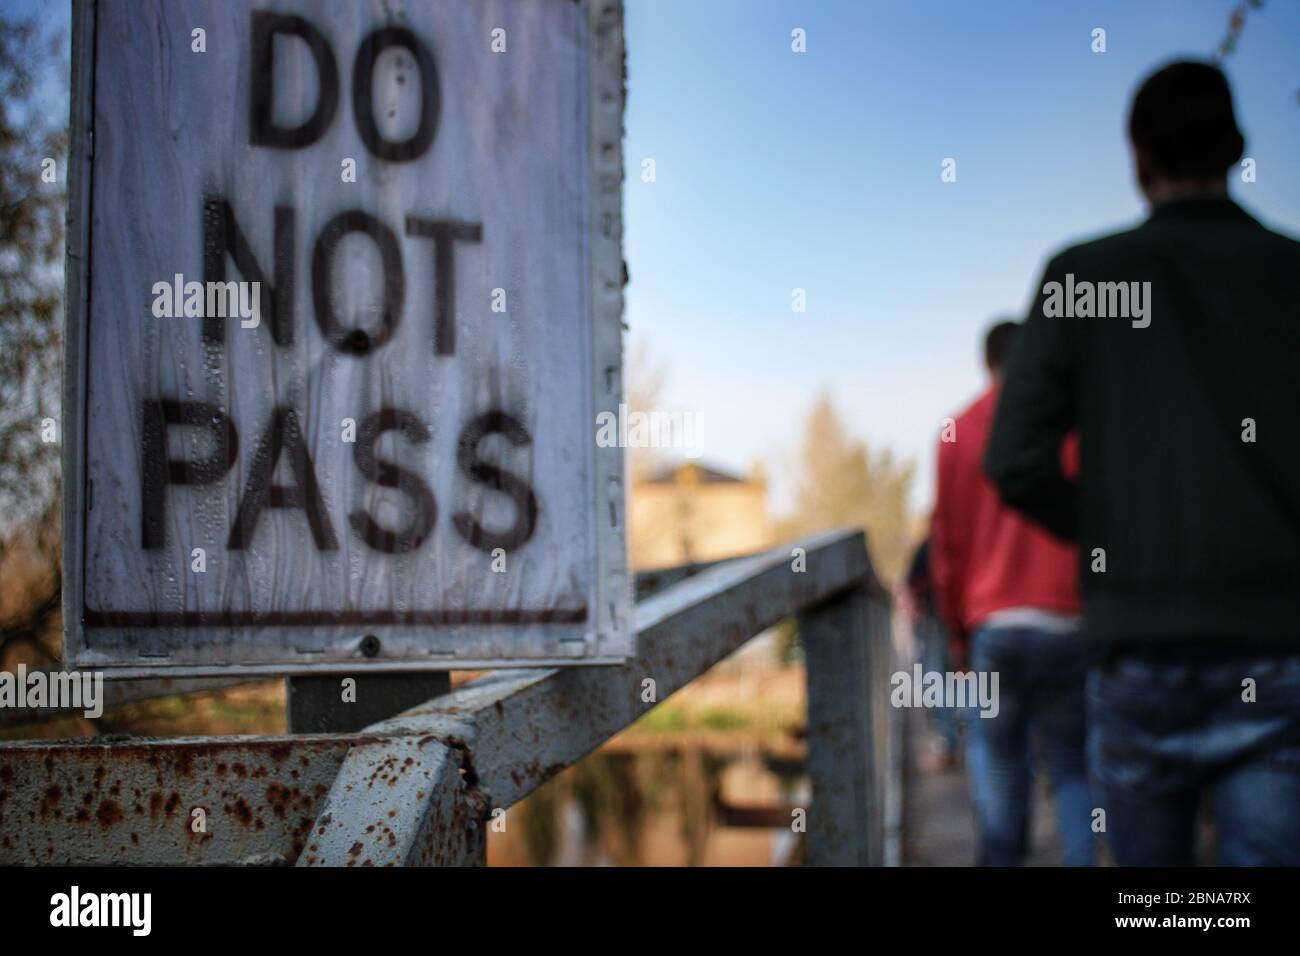 a-do-not-pass-sign-on-a-decaying-bridge-